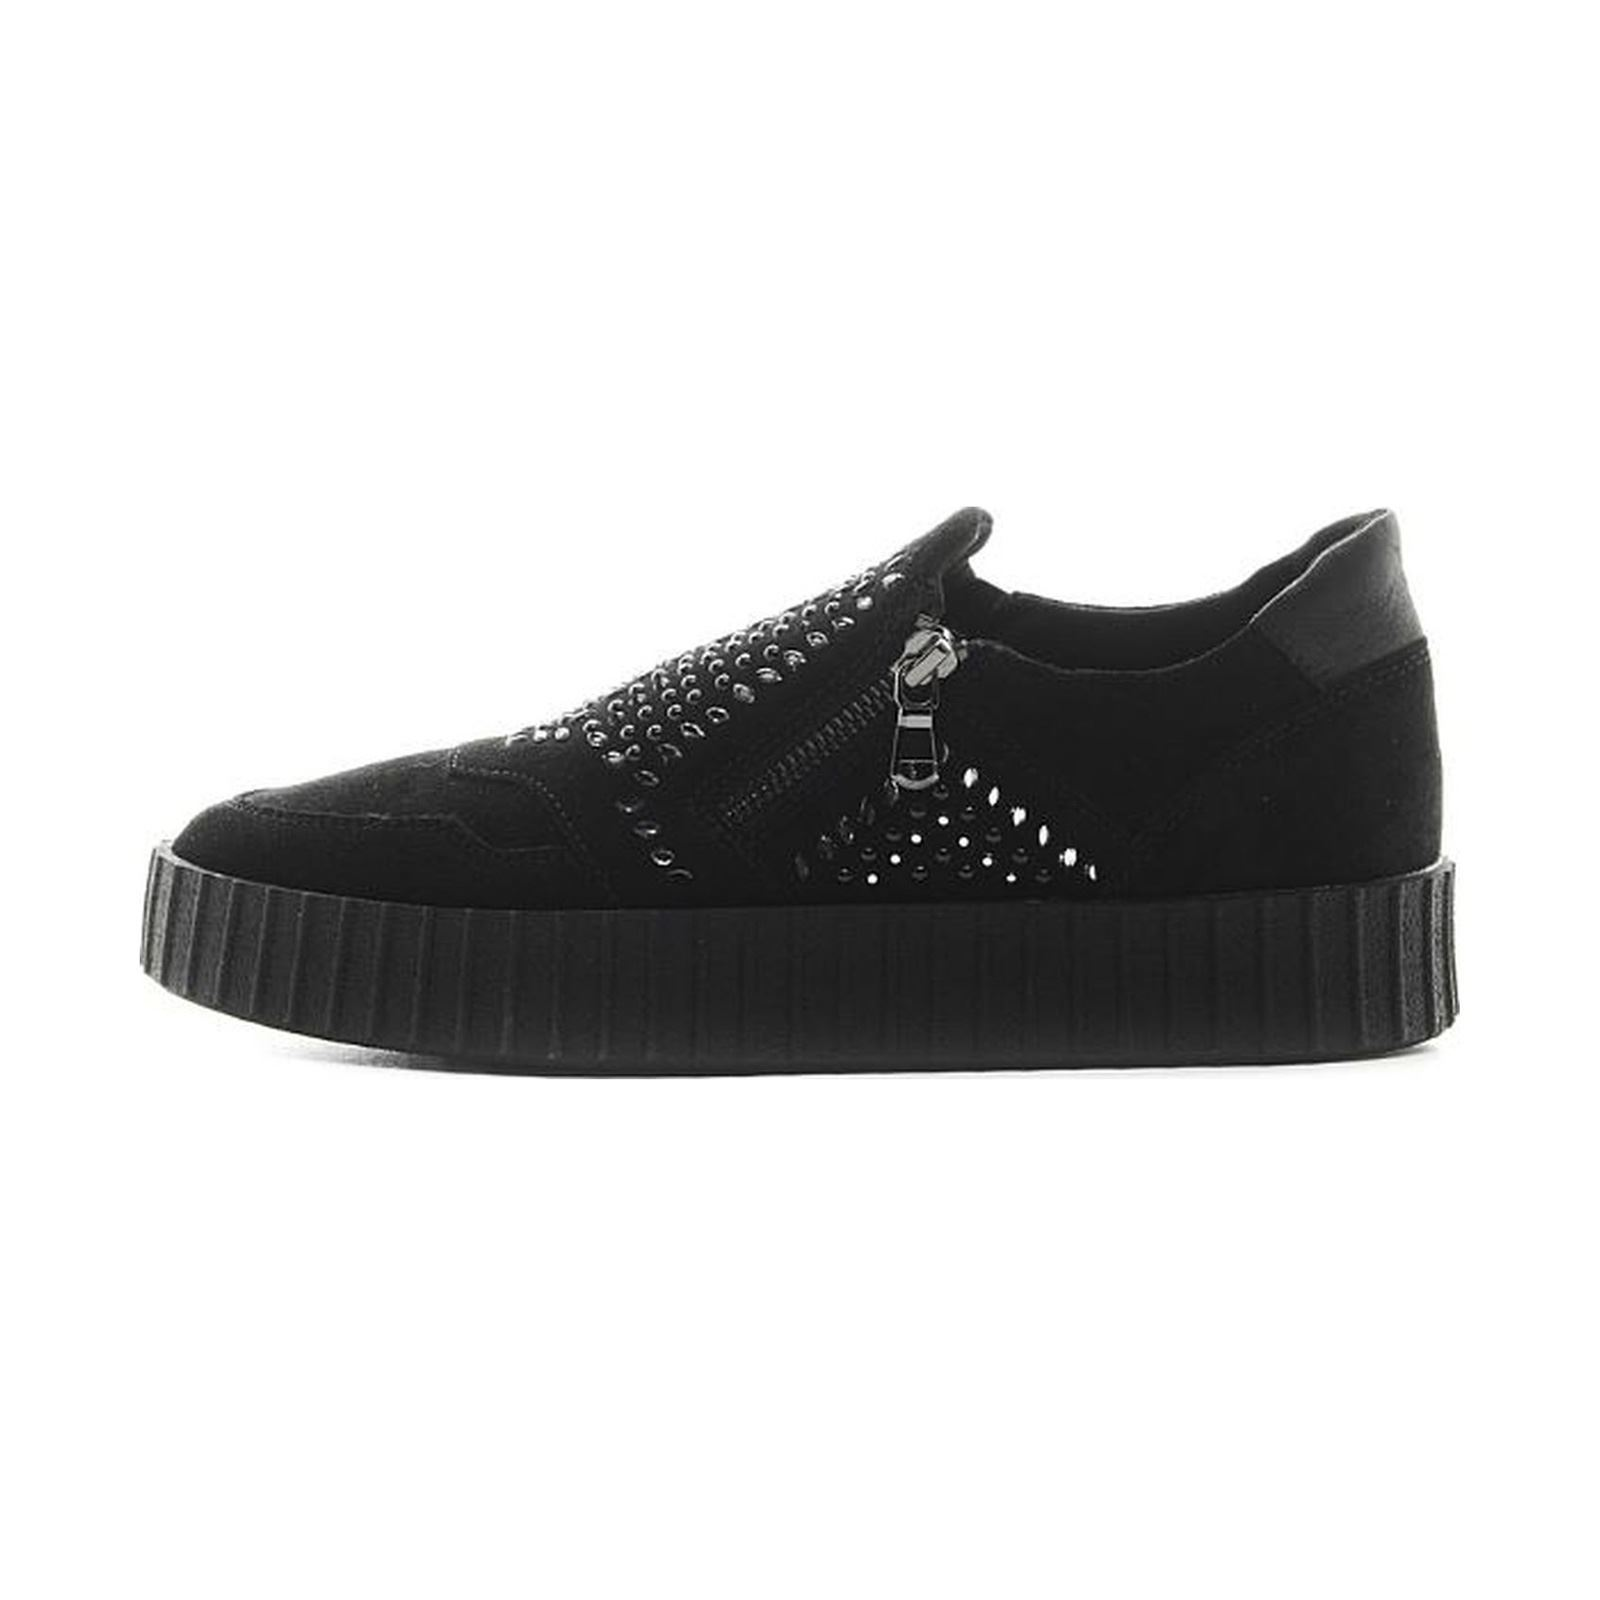 Geox Hidence Sneakers in pelle nero